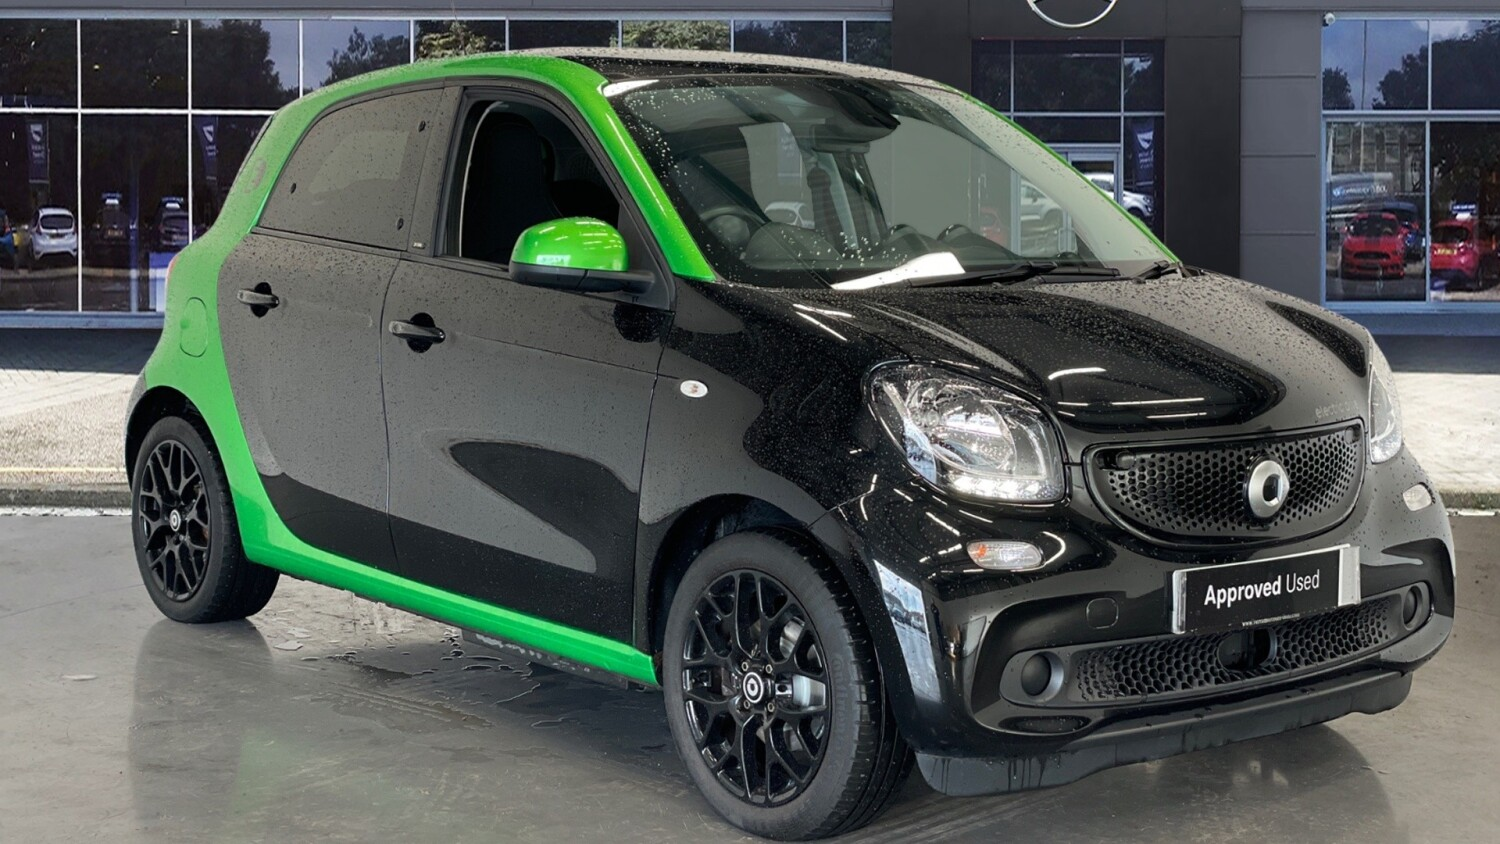 used smart forfour hatchback electric drive prime premium 5dr auto electric hatchback for sale. Black Bedroom Furniture Sets. Home Design Ideas